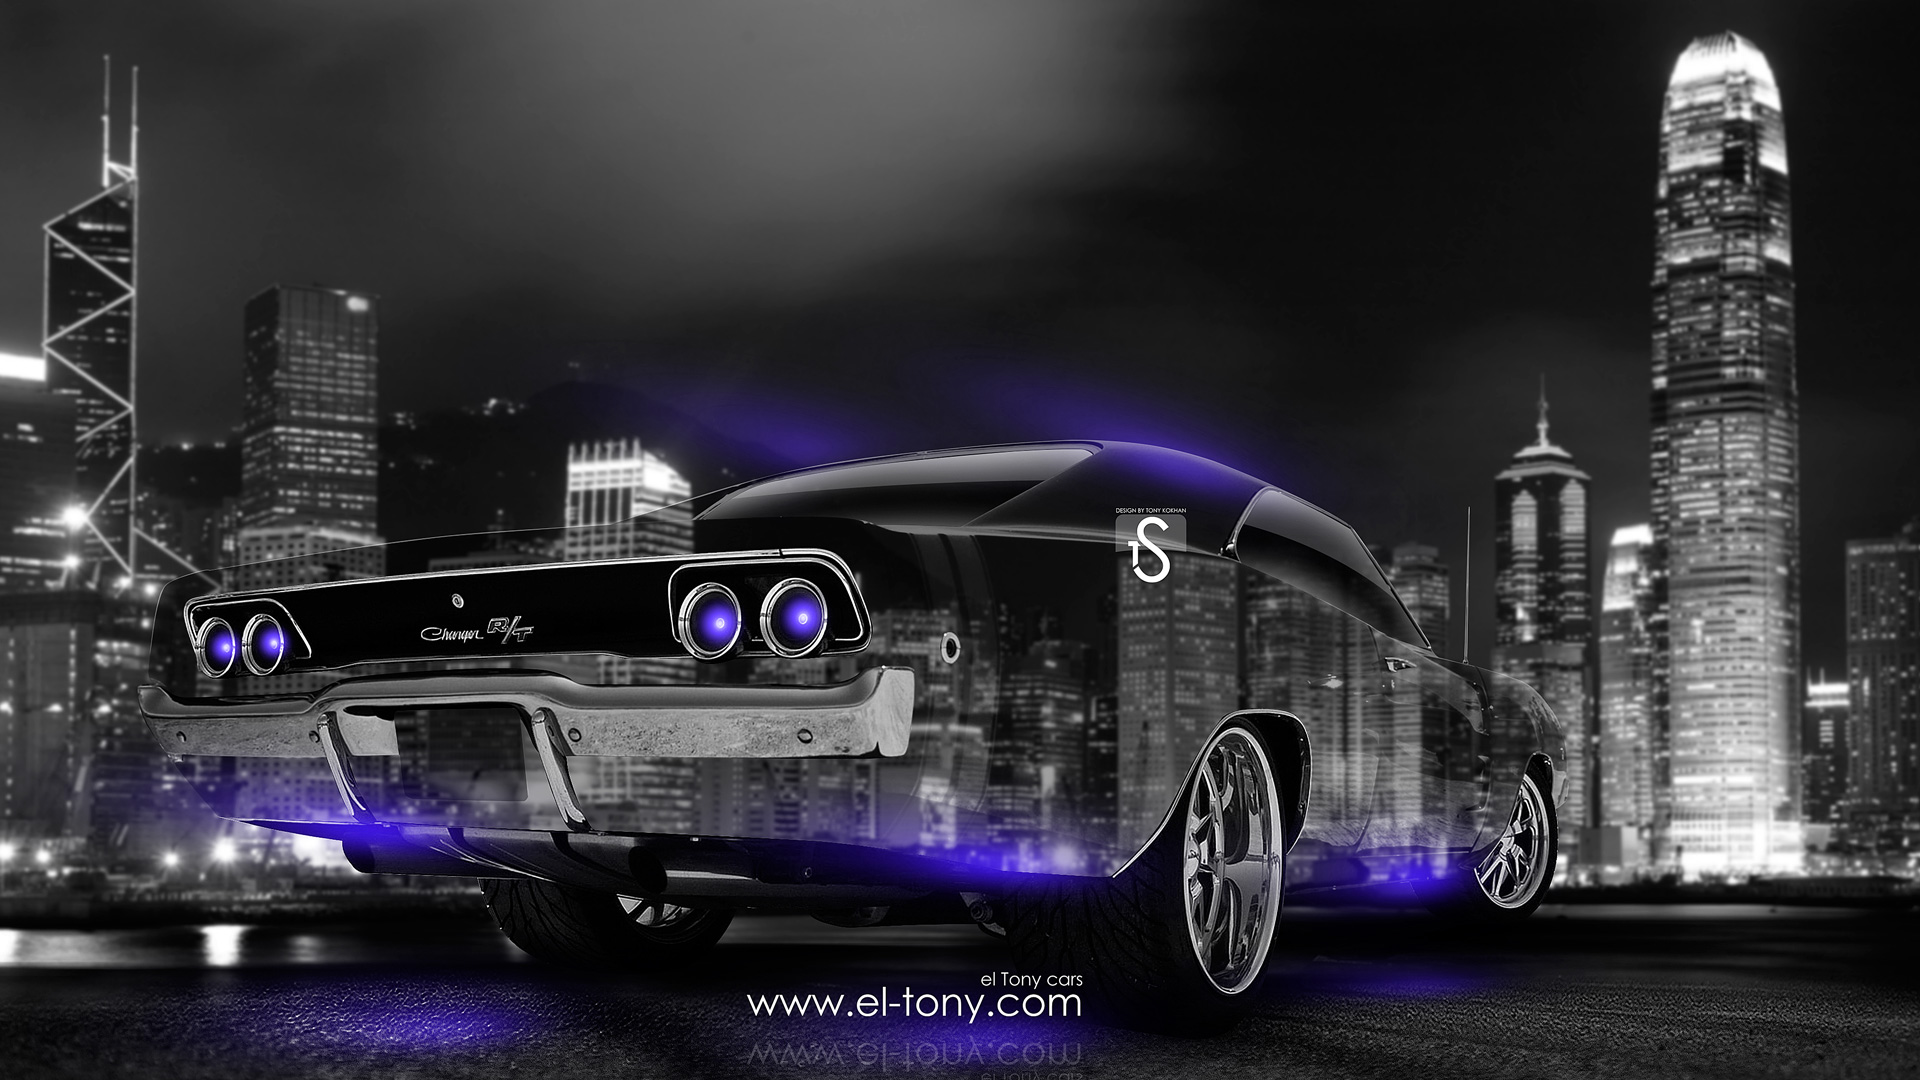 Muscle Car 3d Live Wallpaper Dodge Charger Rt Muscle Crystal City Car 2014 El Tony